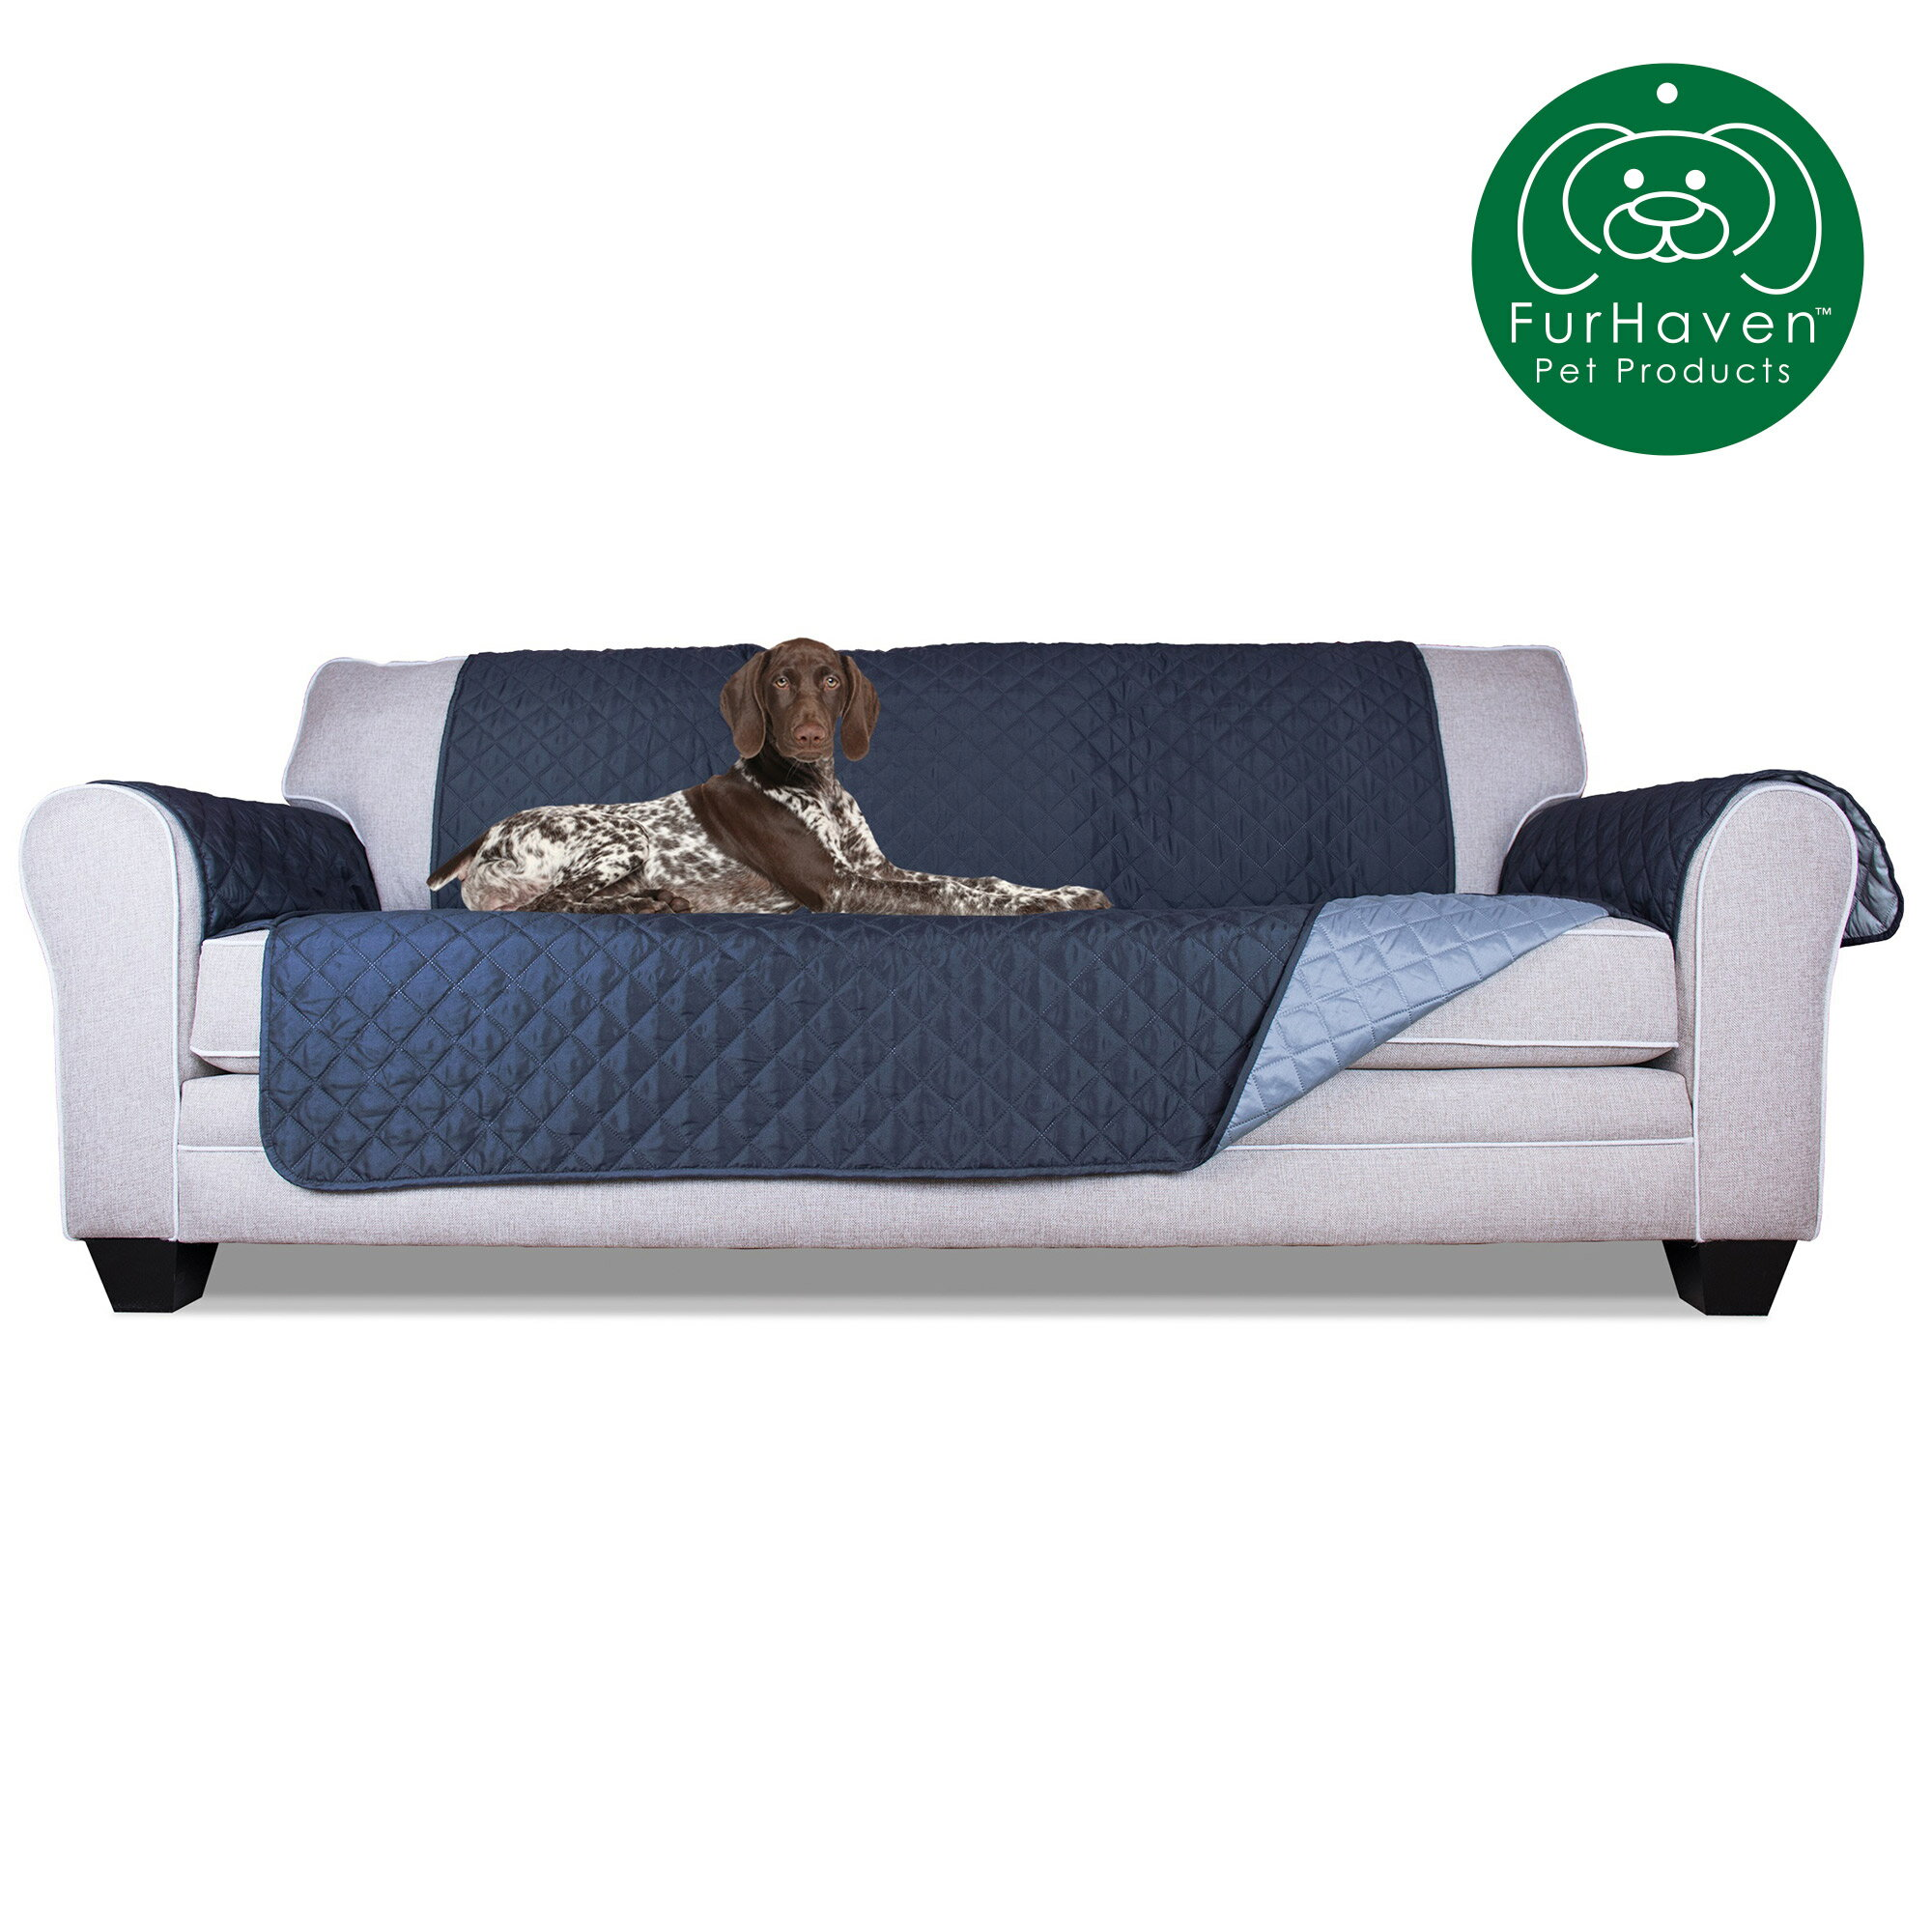 Gray//Mist Large Fur Haven 49401017 Sofa Buddy Pet Bed Furniture Cover